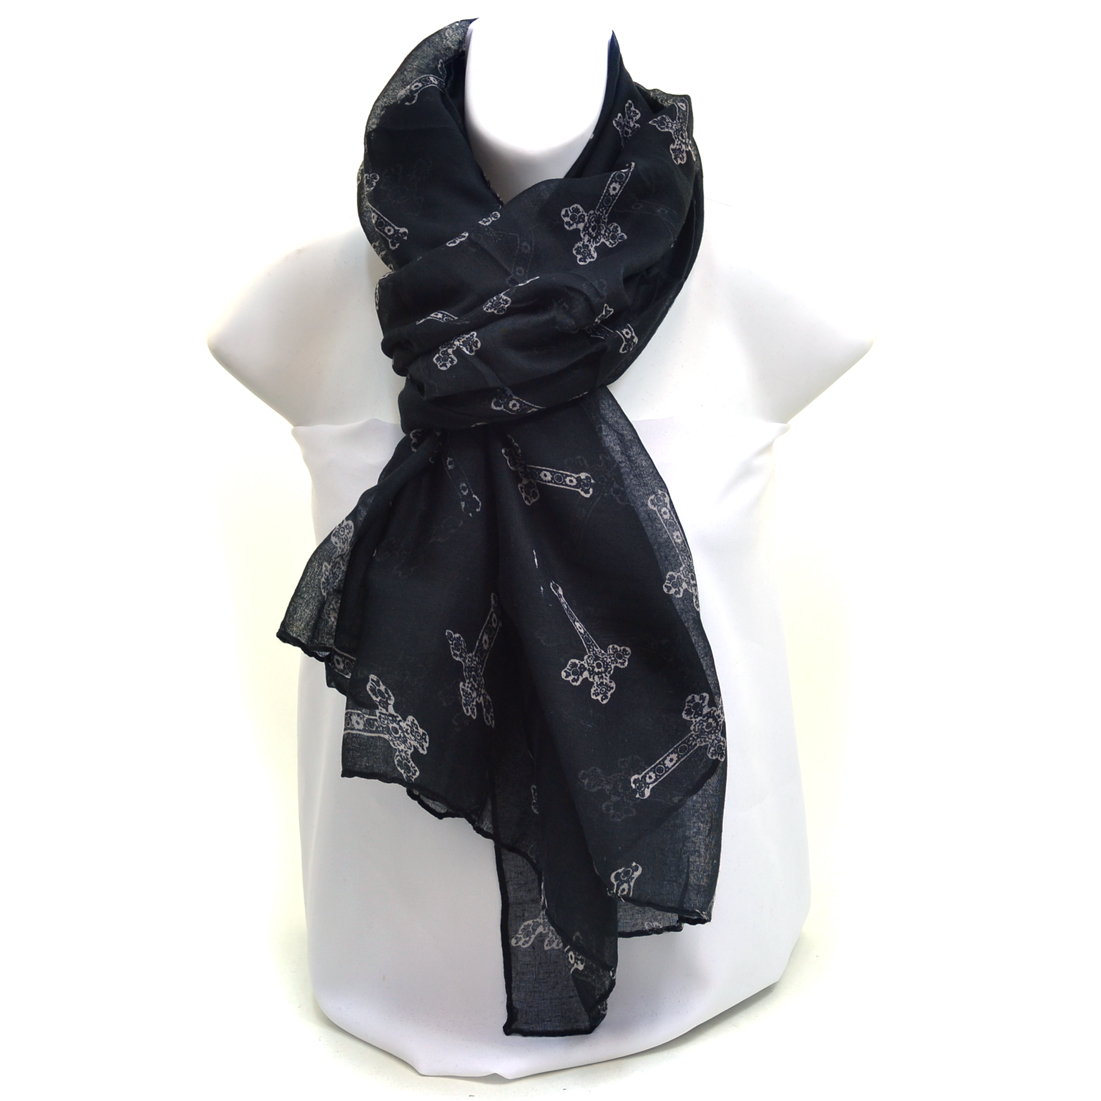 Scalloped Cross Print Scarf - Black/Beige